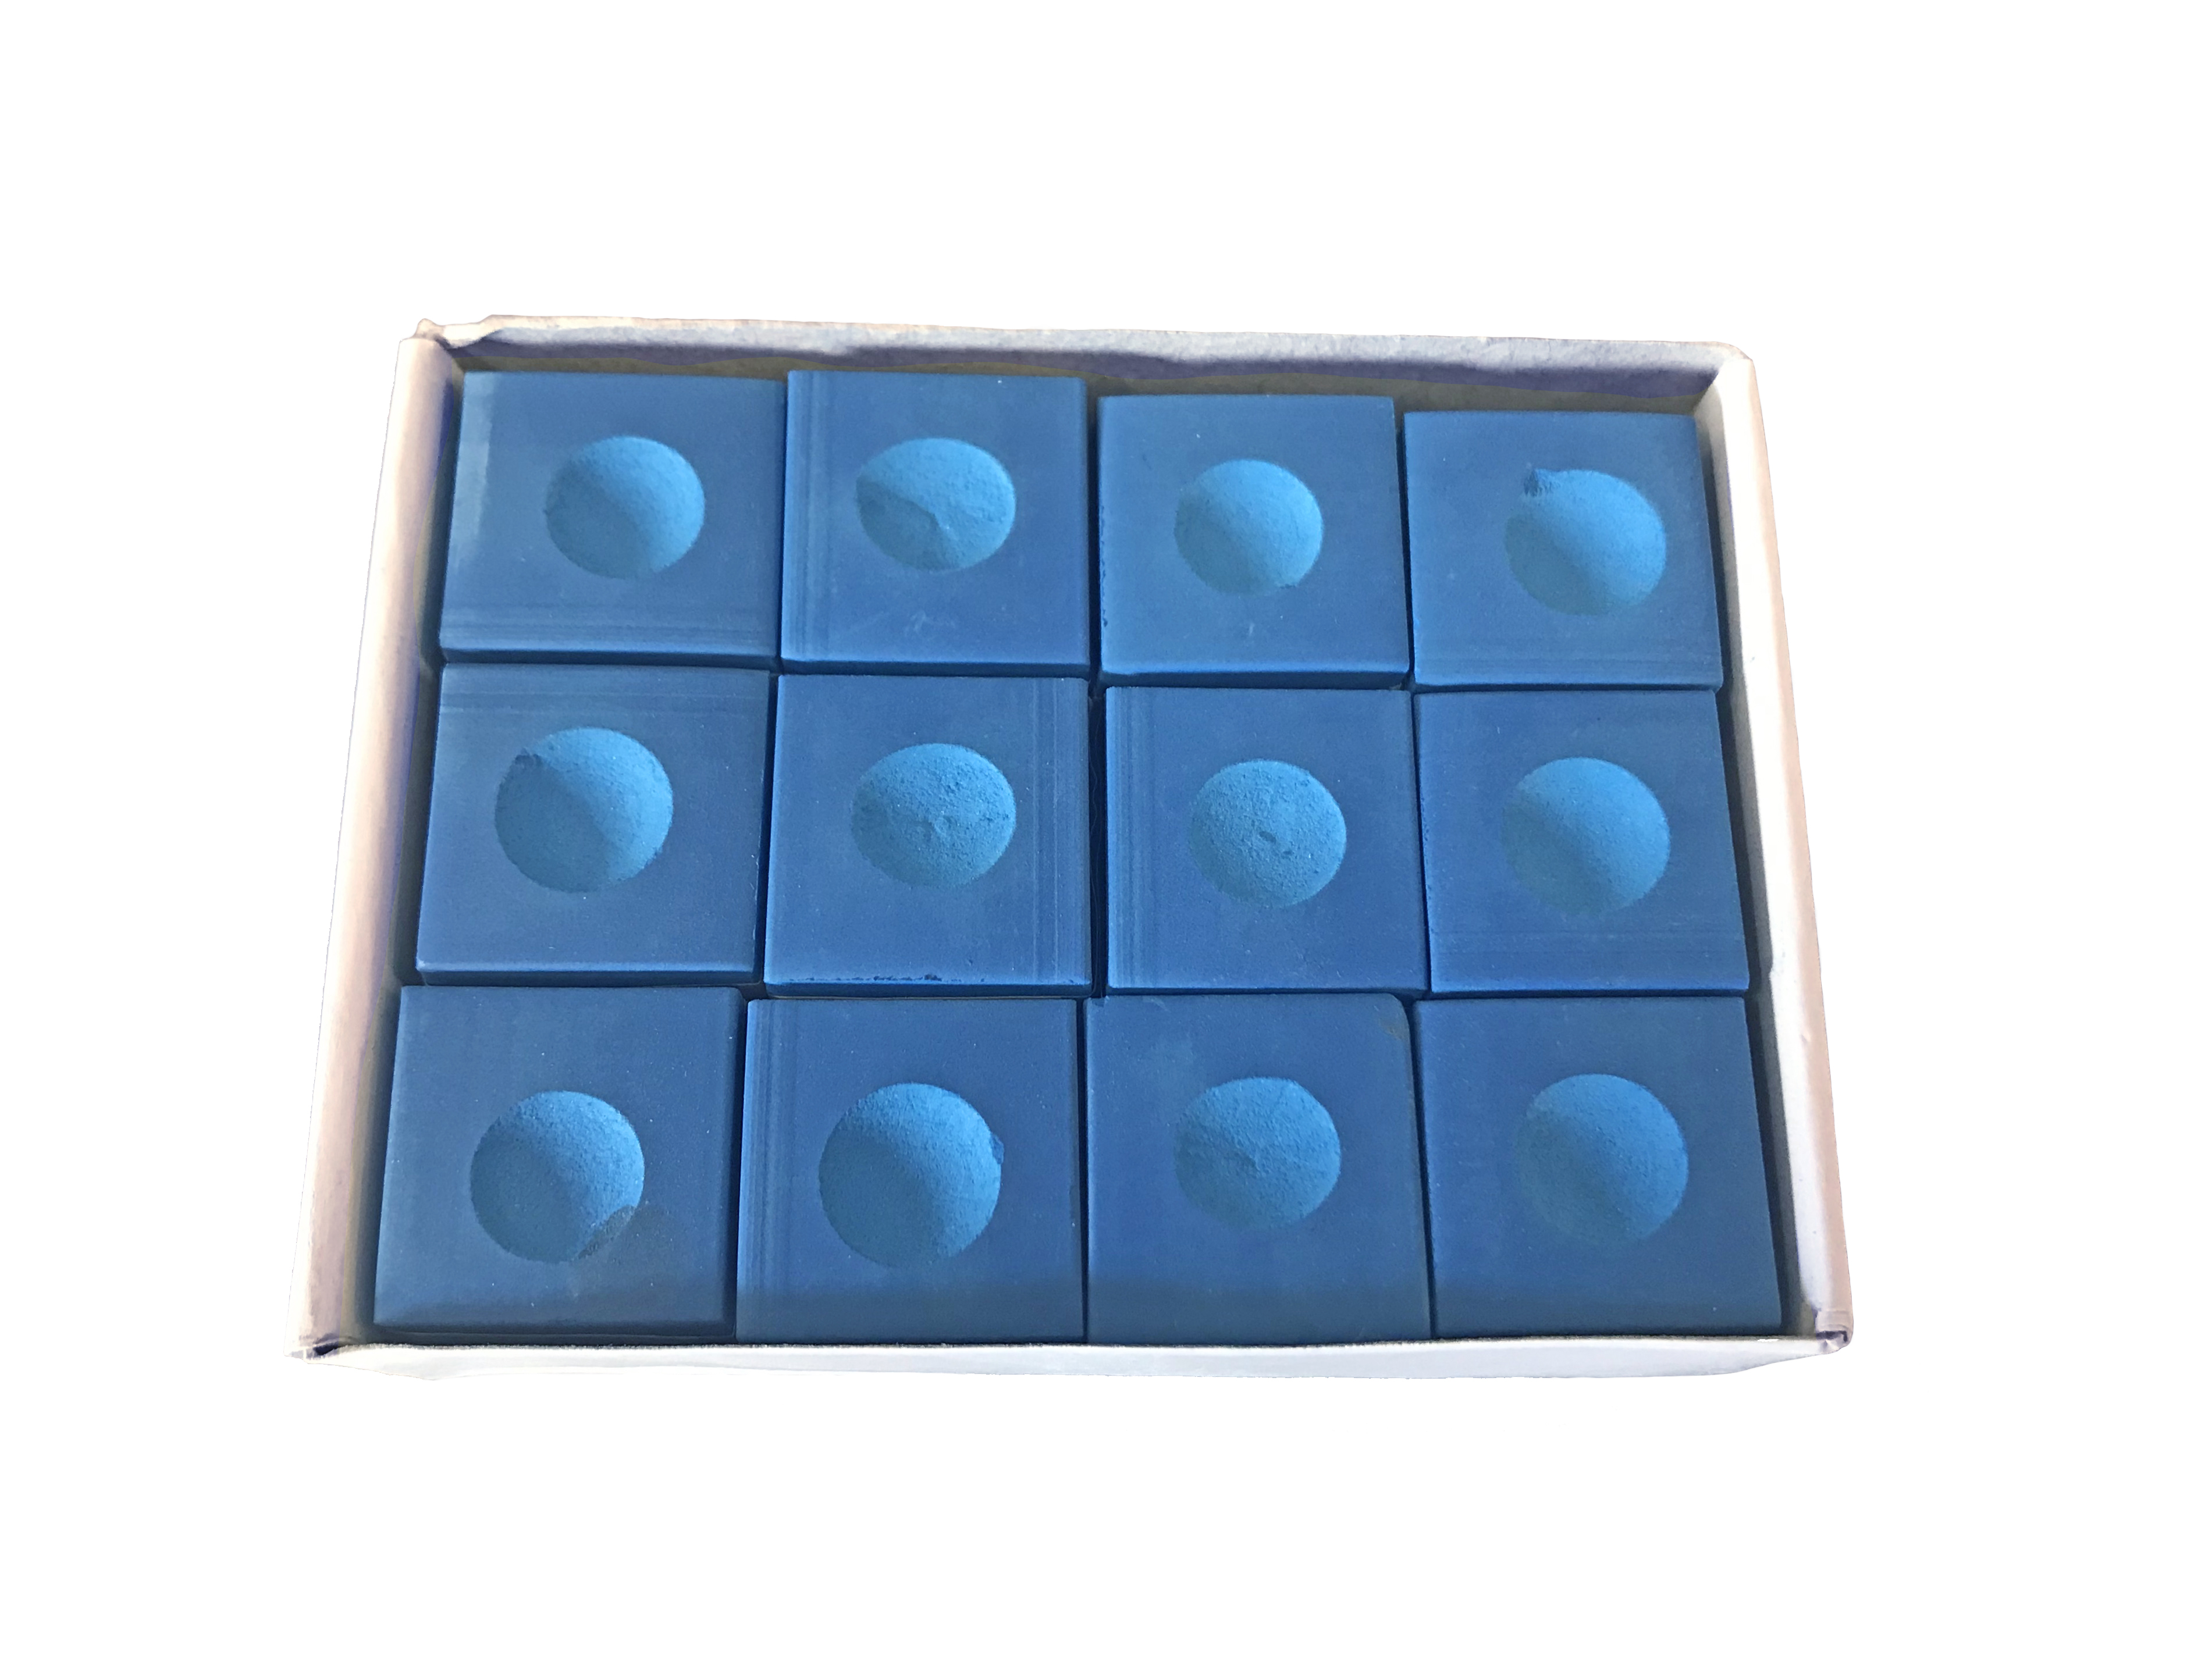 Box of 12 Cubes of Blue Pool Cue Chalks by CANNON SPORTS